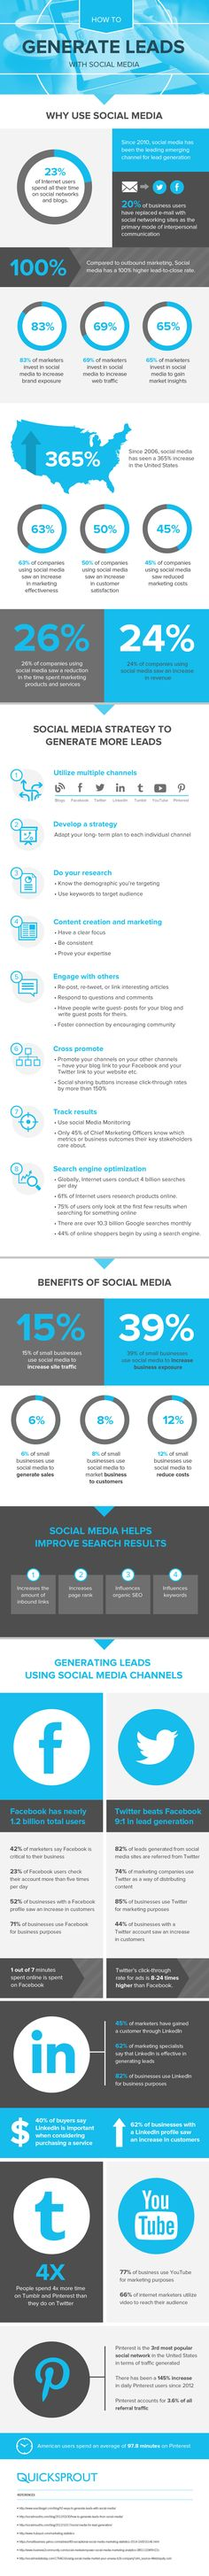 Infographic: How to Generate Leads with Social Media #infographic  #B2B #BuildingMaterials #Manufacturers